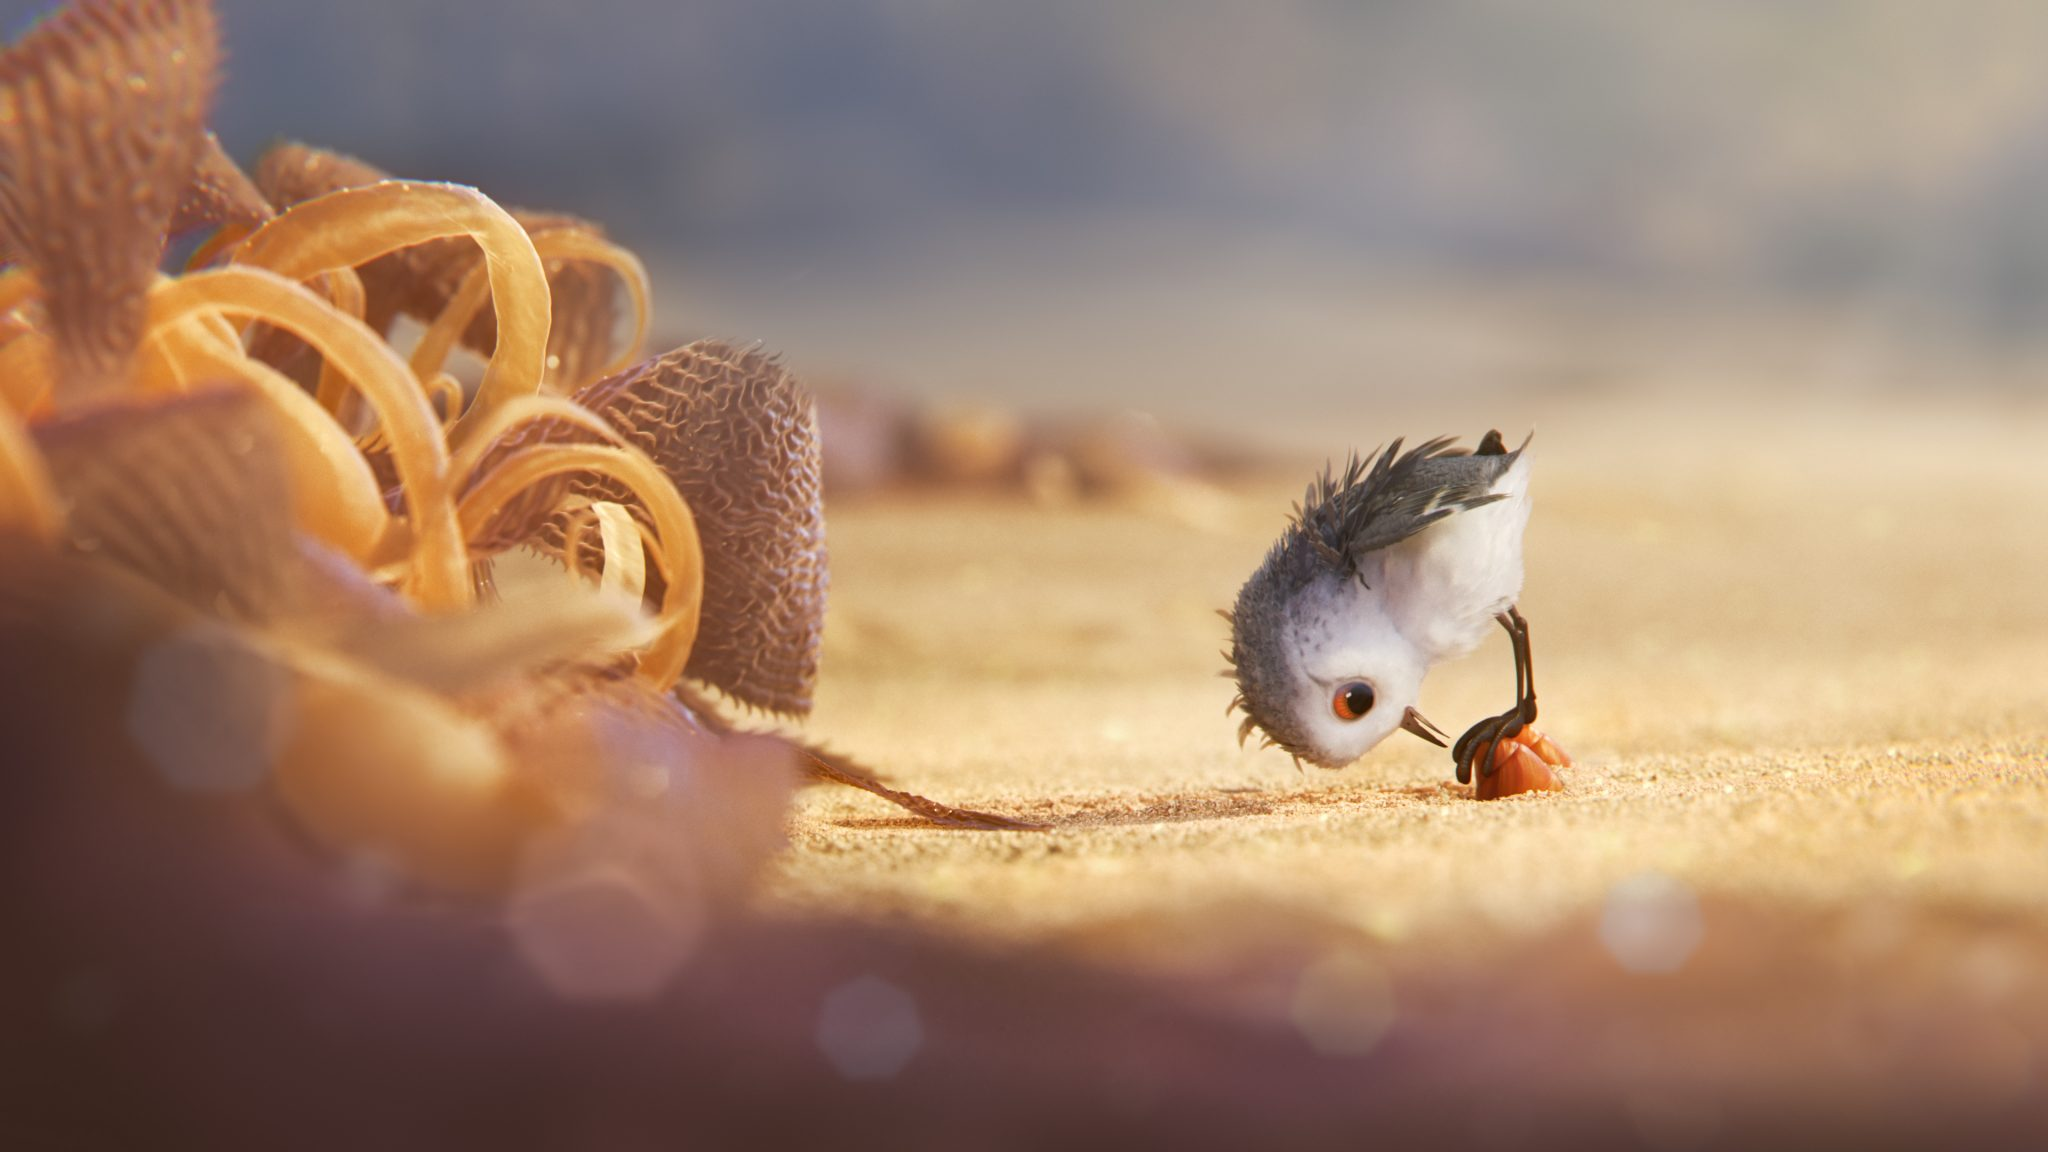 A hungry sandpiper hatchling ventures from her nest for the first time to dig for food by the shoreline.